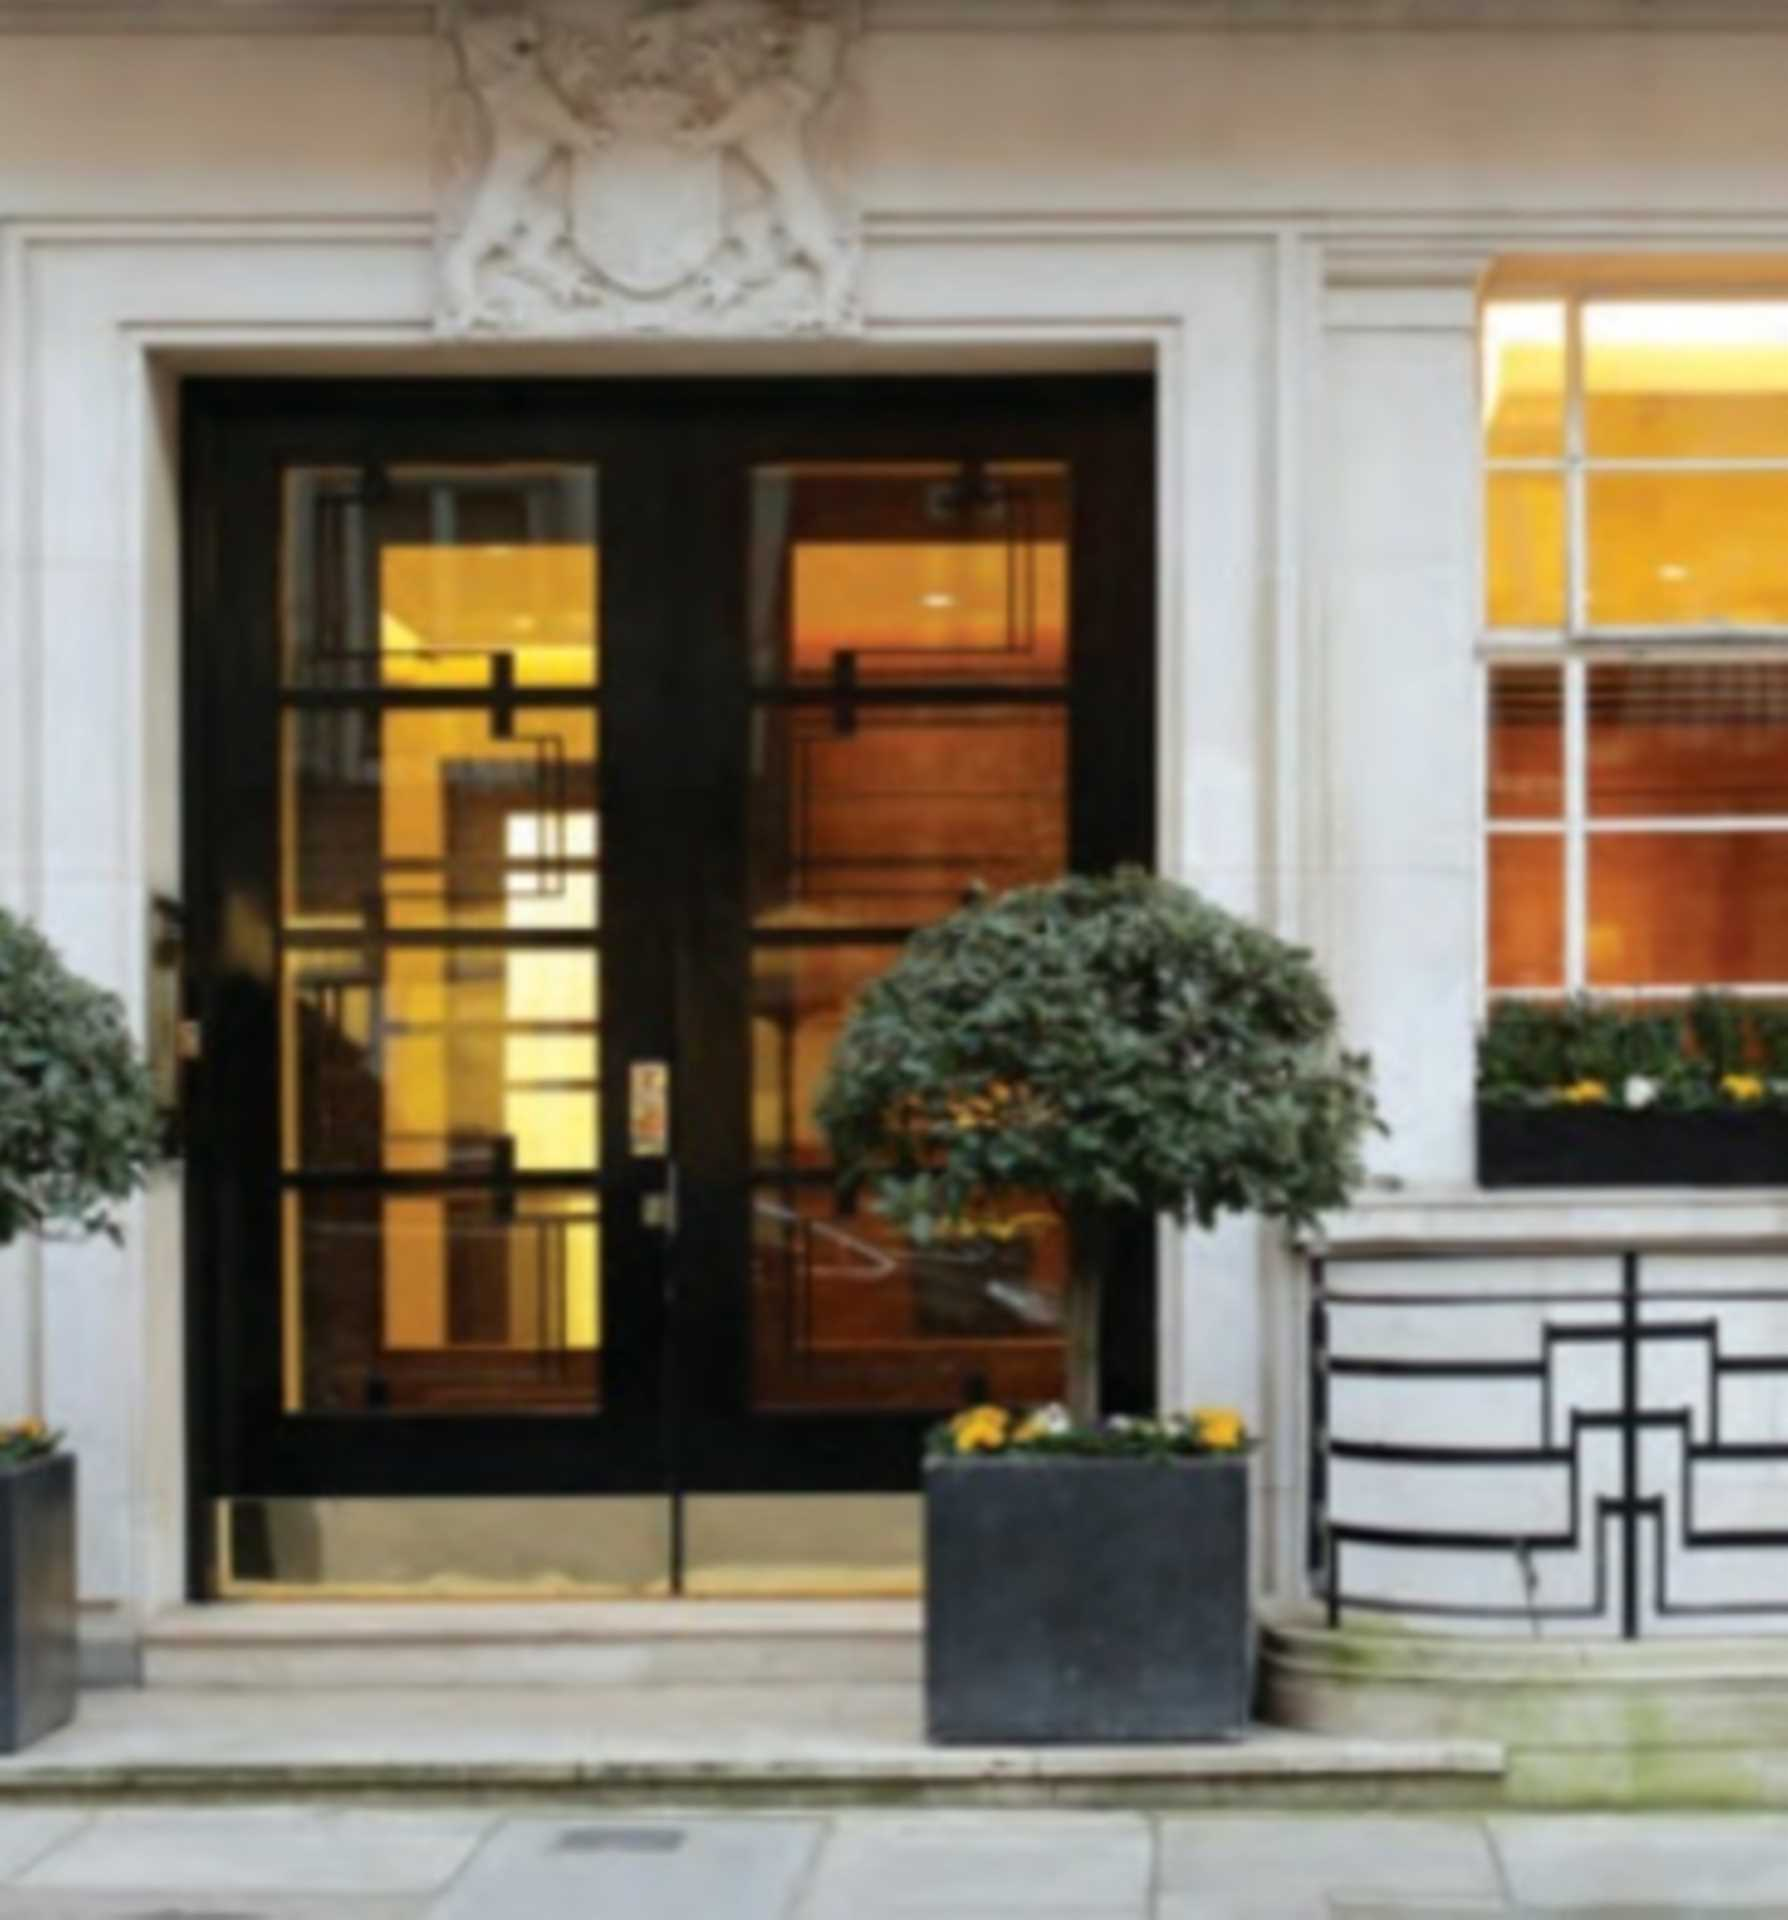 The Howard De Walden Estate, the great Marylebone investors - how are they represented in the Marylebone property market, what sort of impact are they having at present and what can we expect from them in the future?